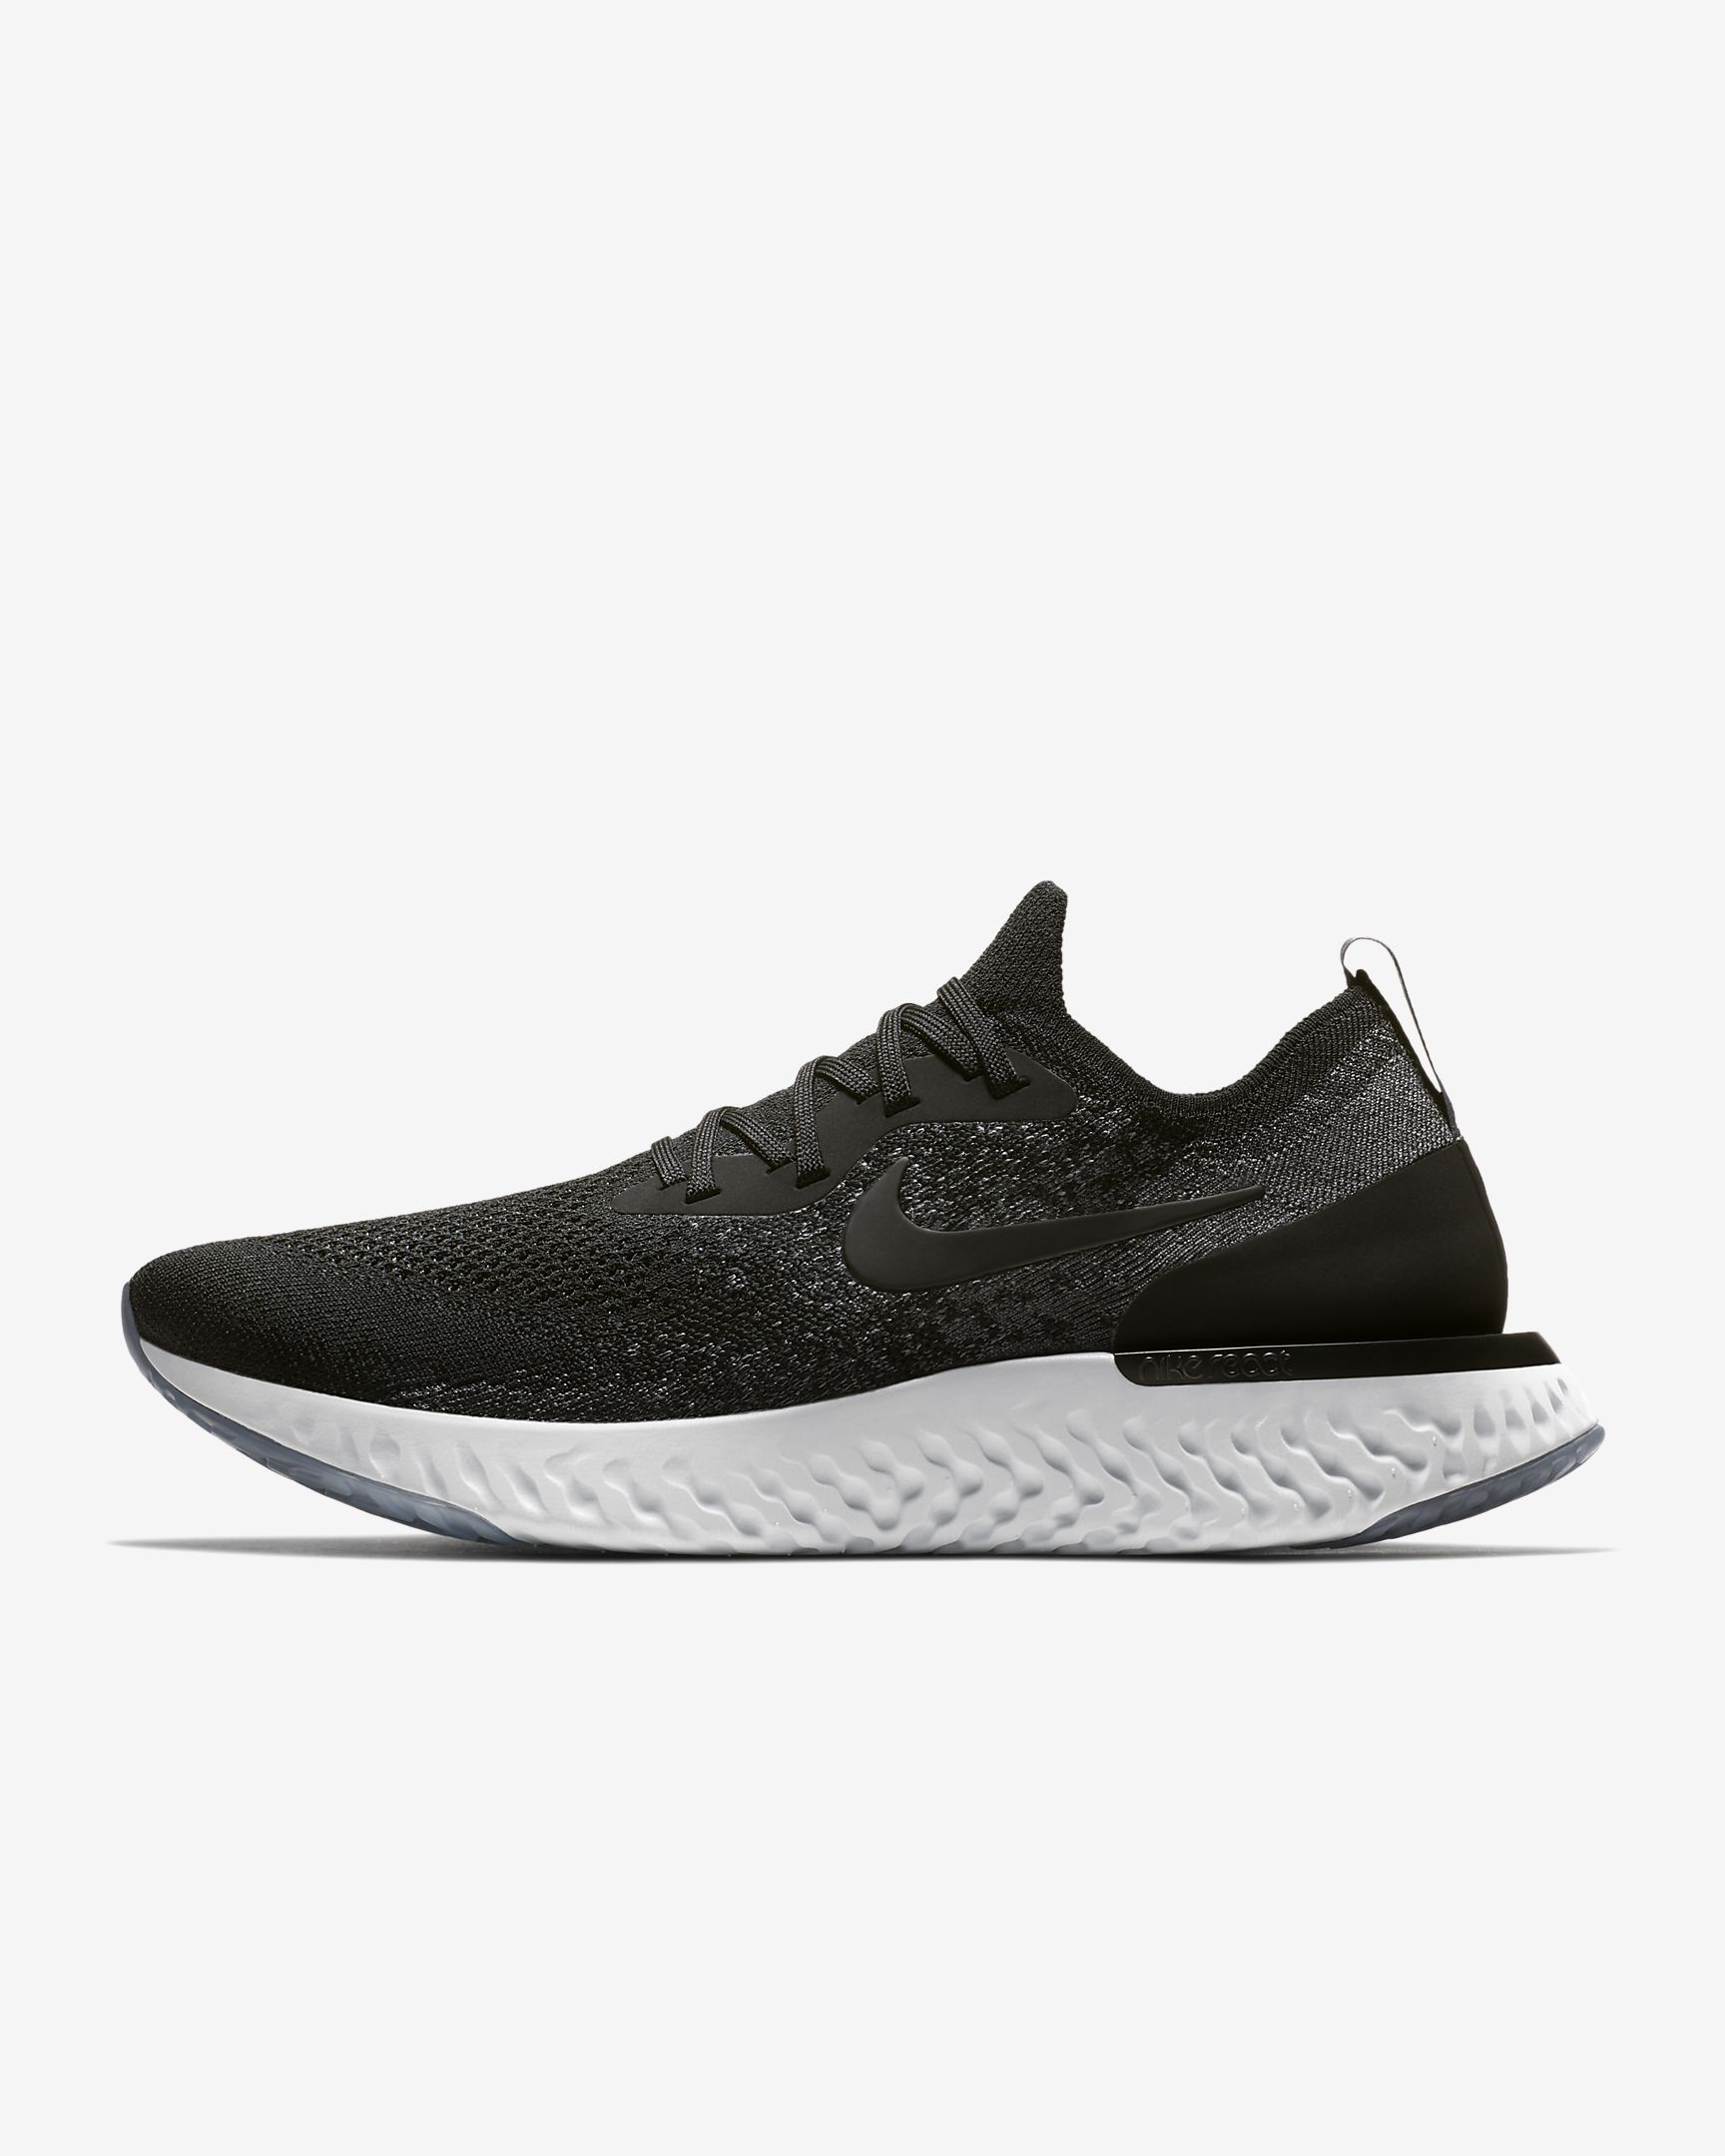 cd6e0dc0c6f63  Nike Epic React  Flyknit Men s Running Shoe 150 Expires  Ongoing Promotion   150.00 http